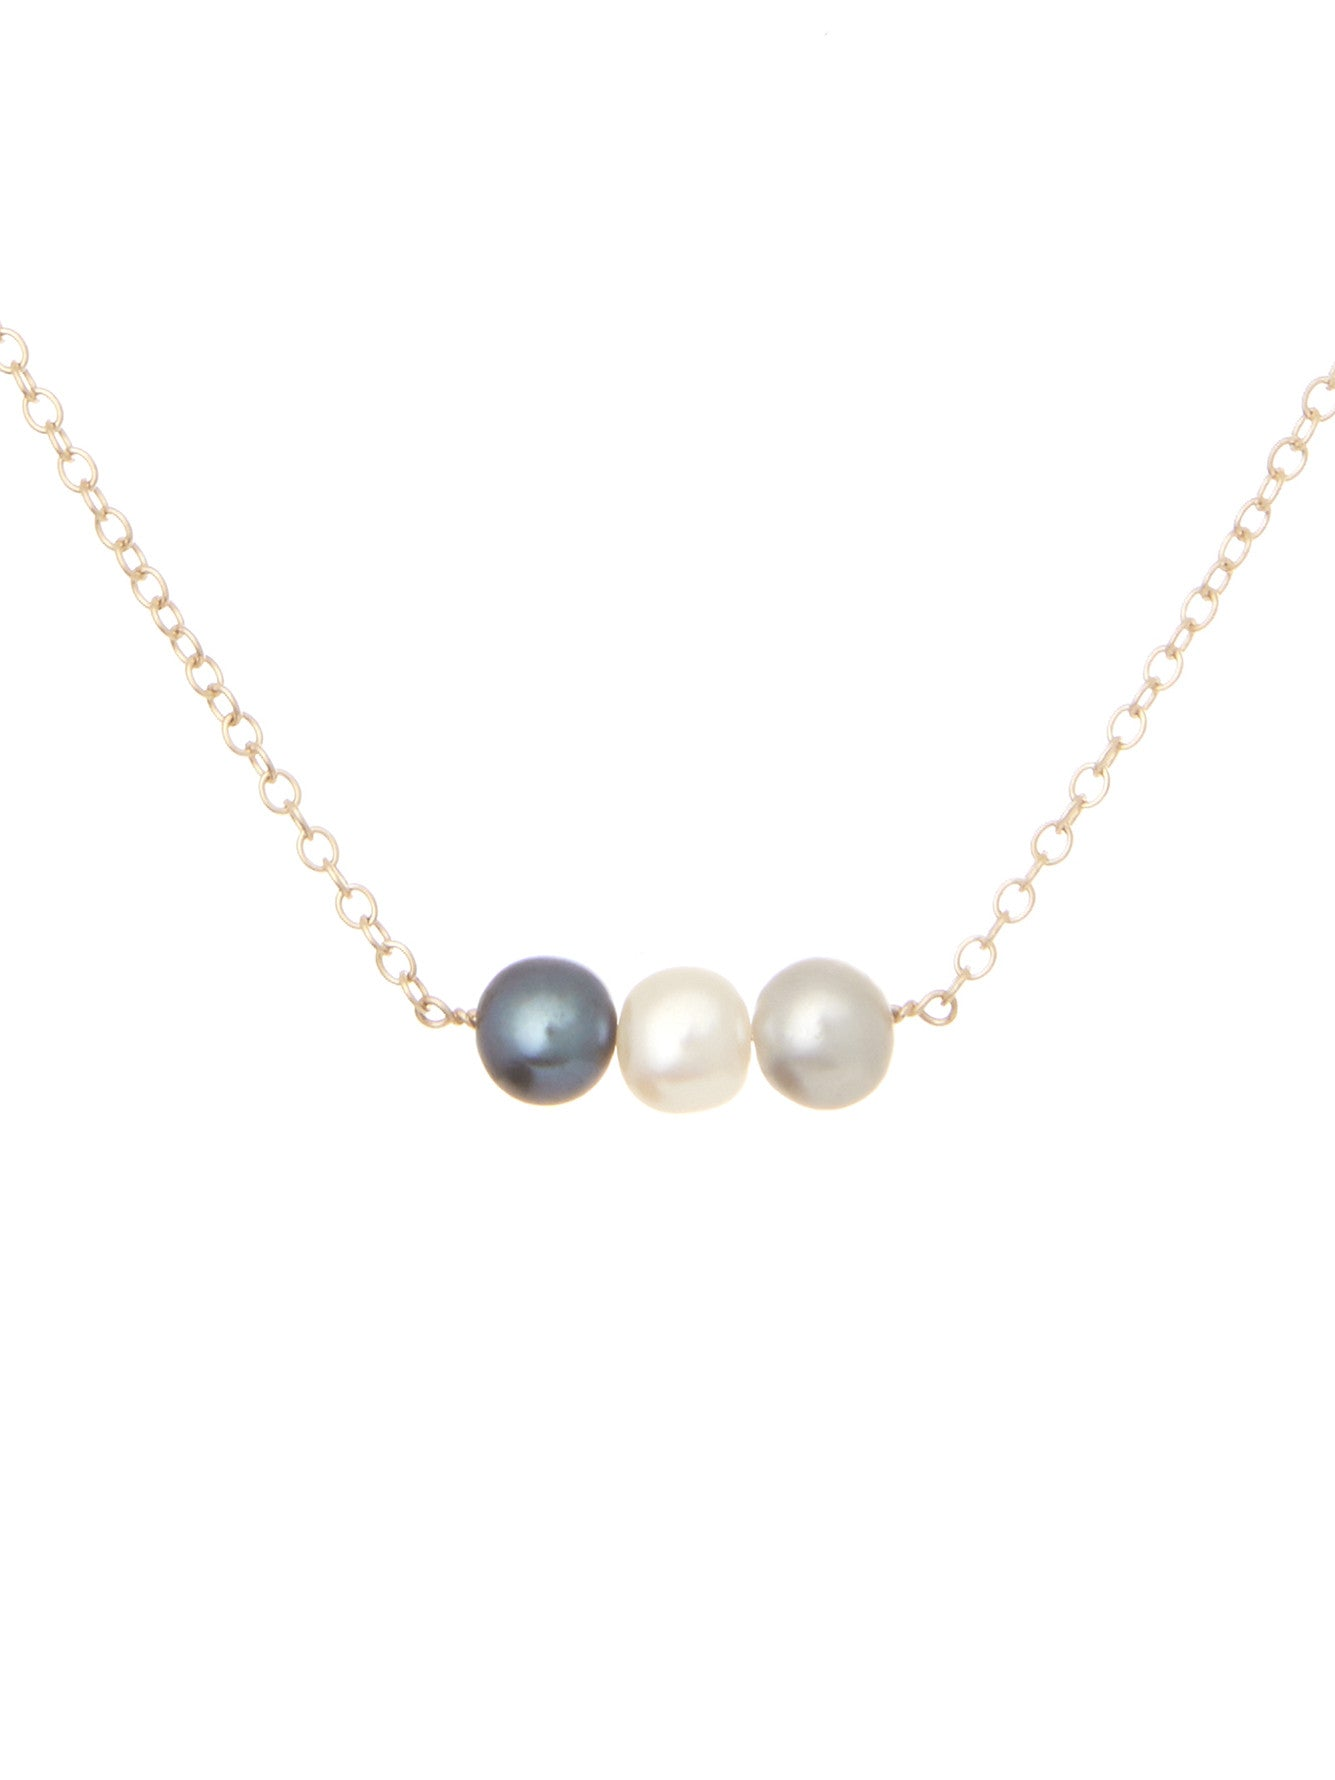 pearl white necklace hanadama akoya